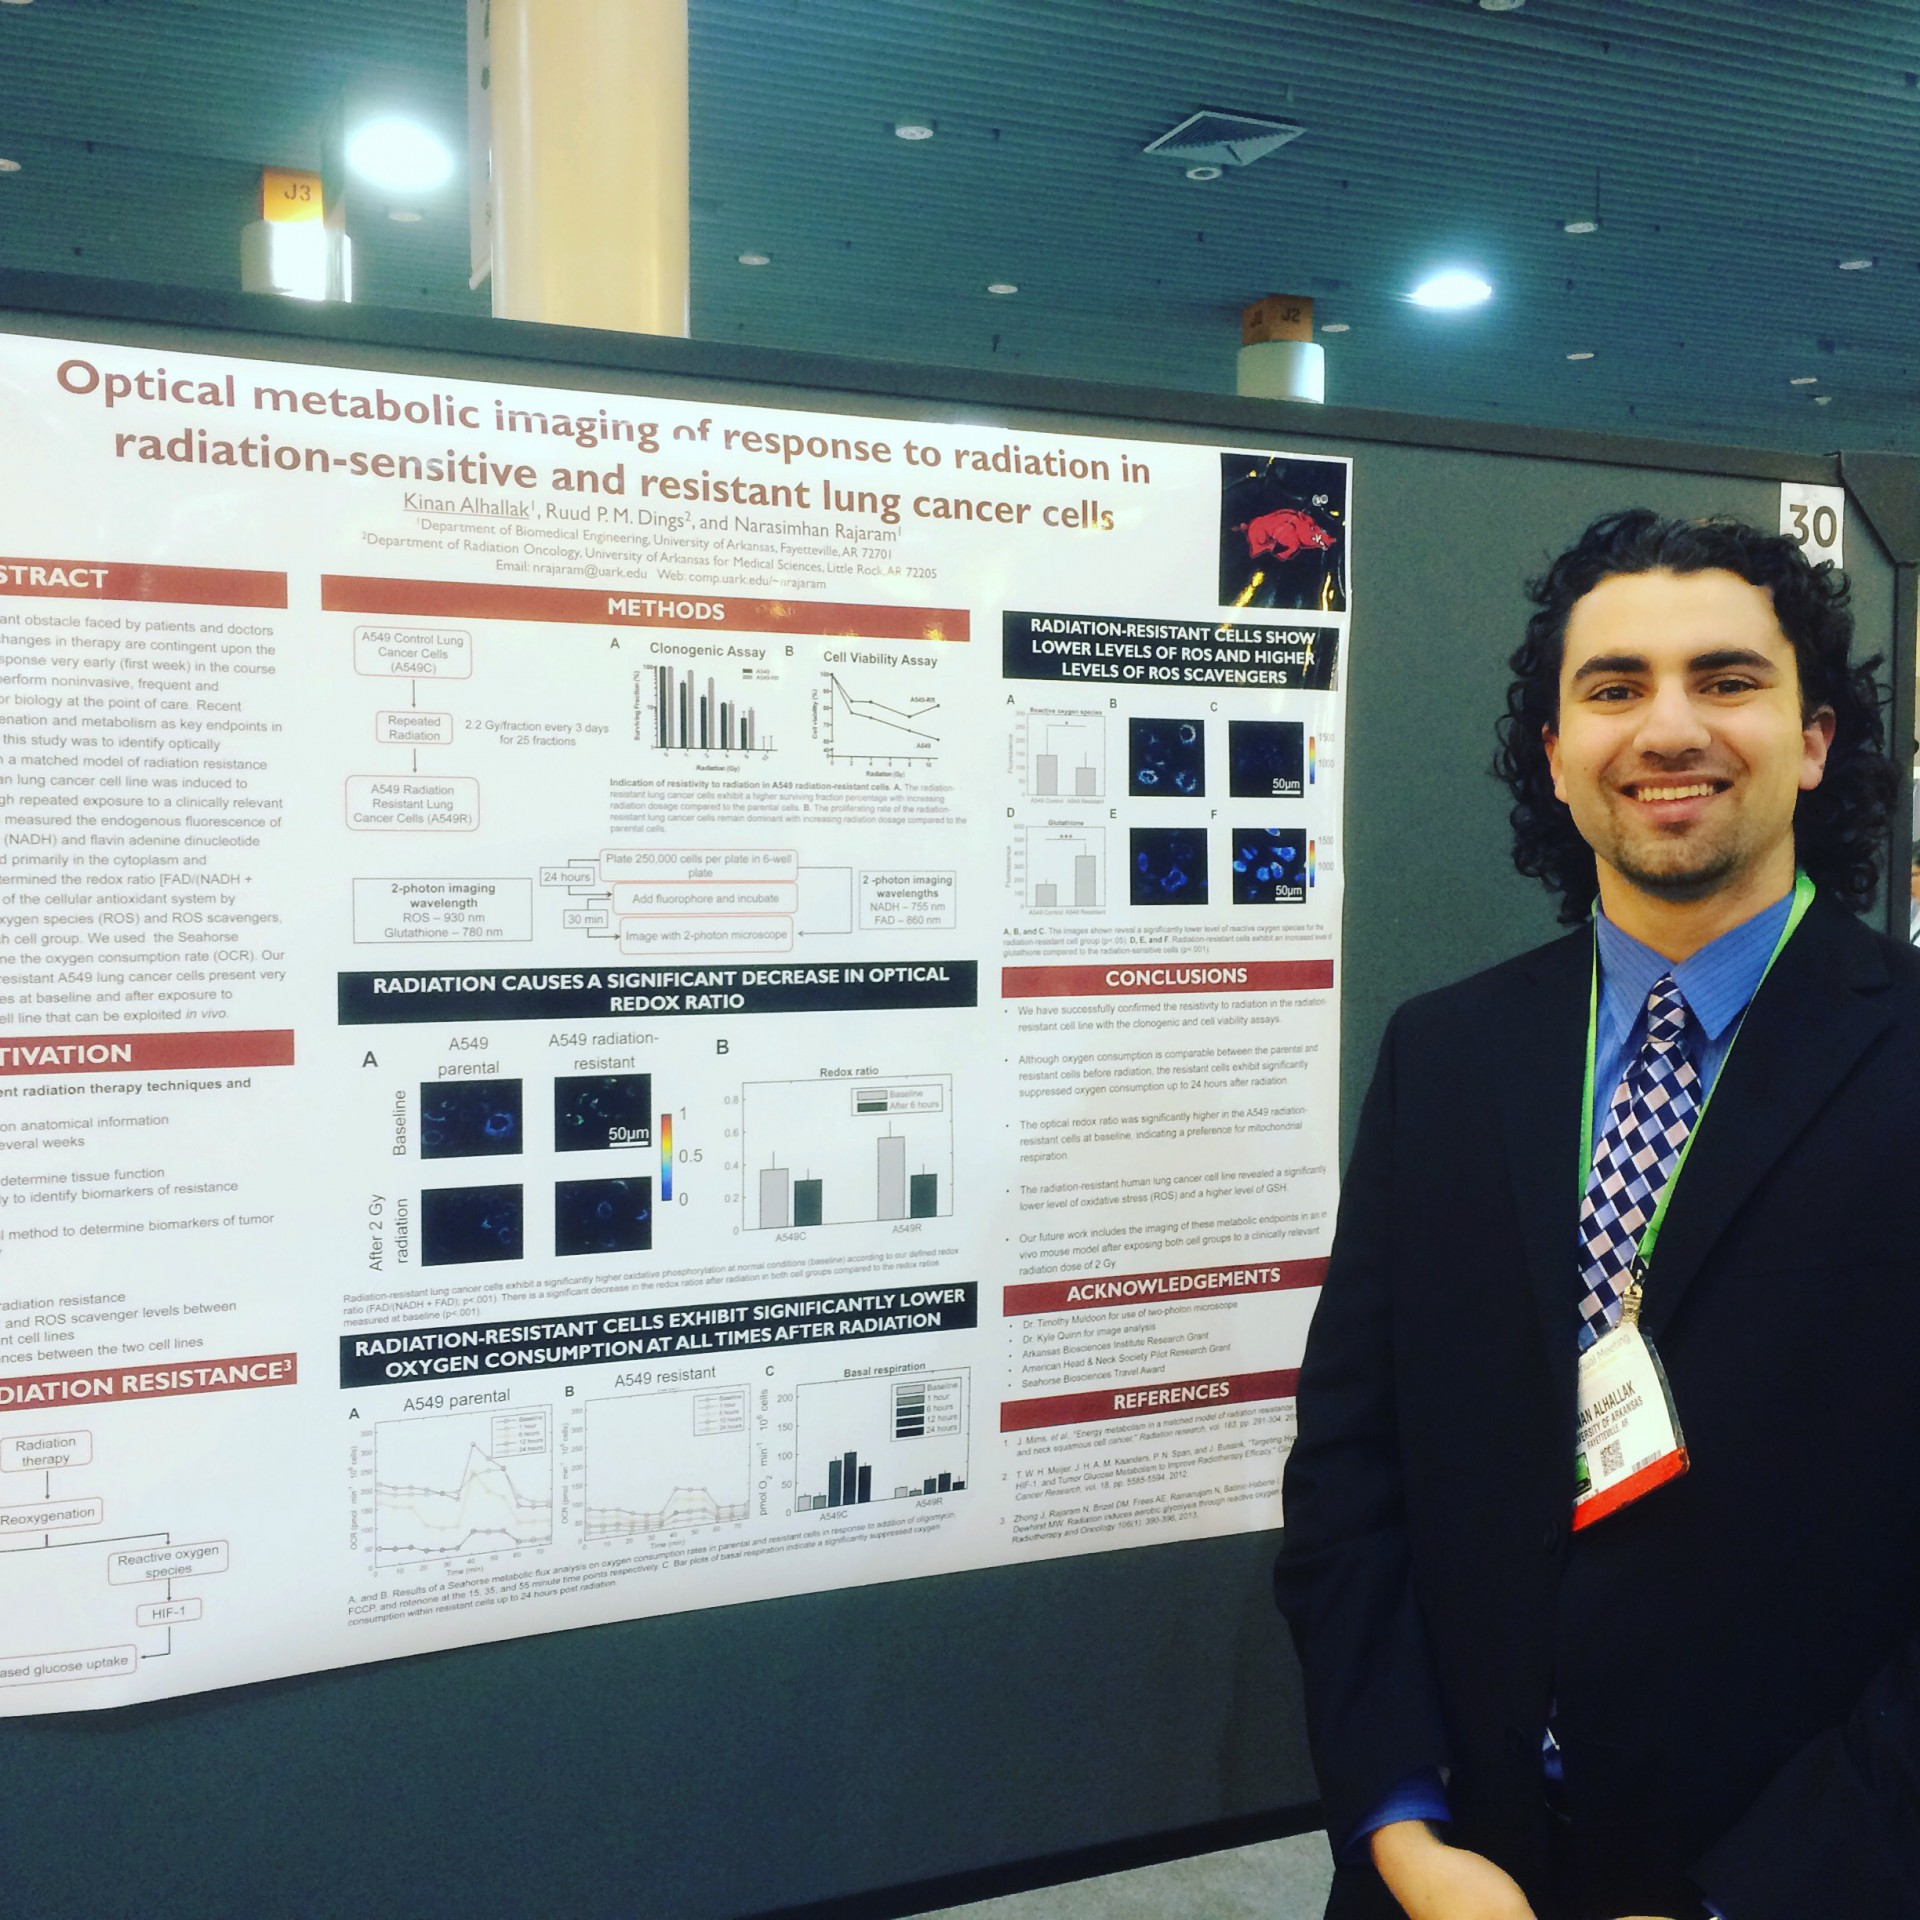 """Alhallak presents his research on """"Optical metabolic imaging of response to radiation in radiation-sensitive and resistant lung cancer cells."""""""